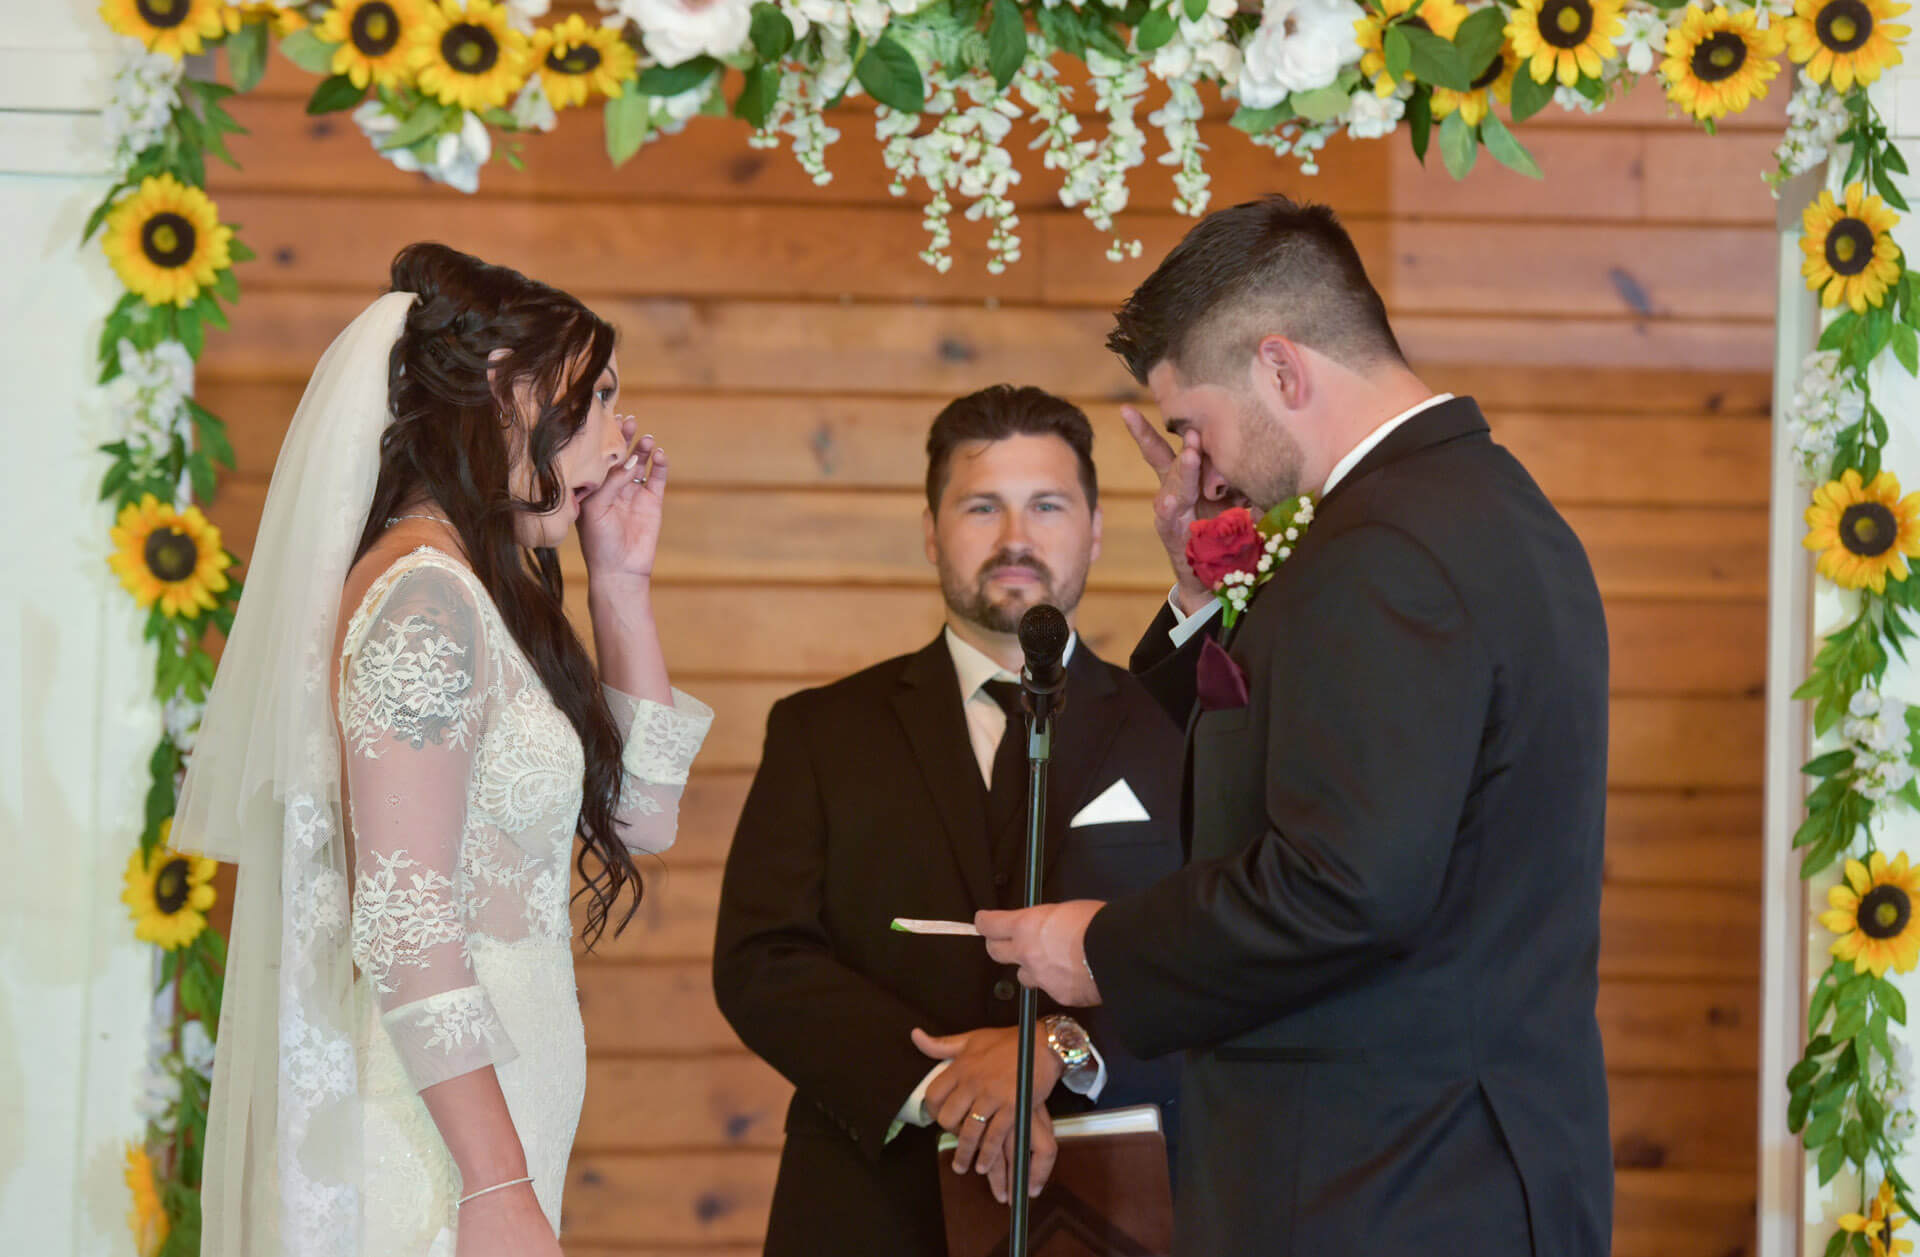 The bride and groom tear up during their vows downriver in Michigan during the pandemic.